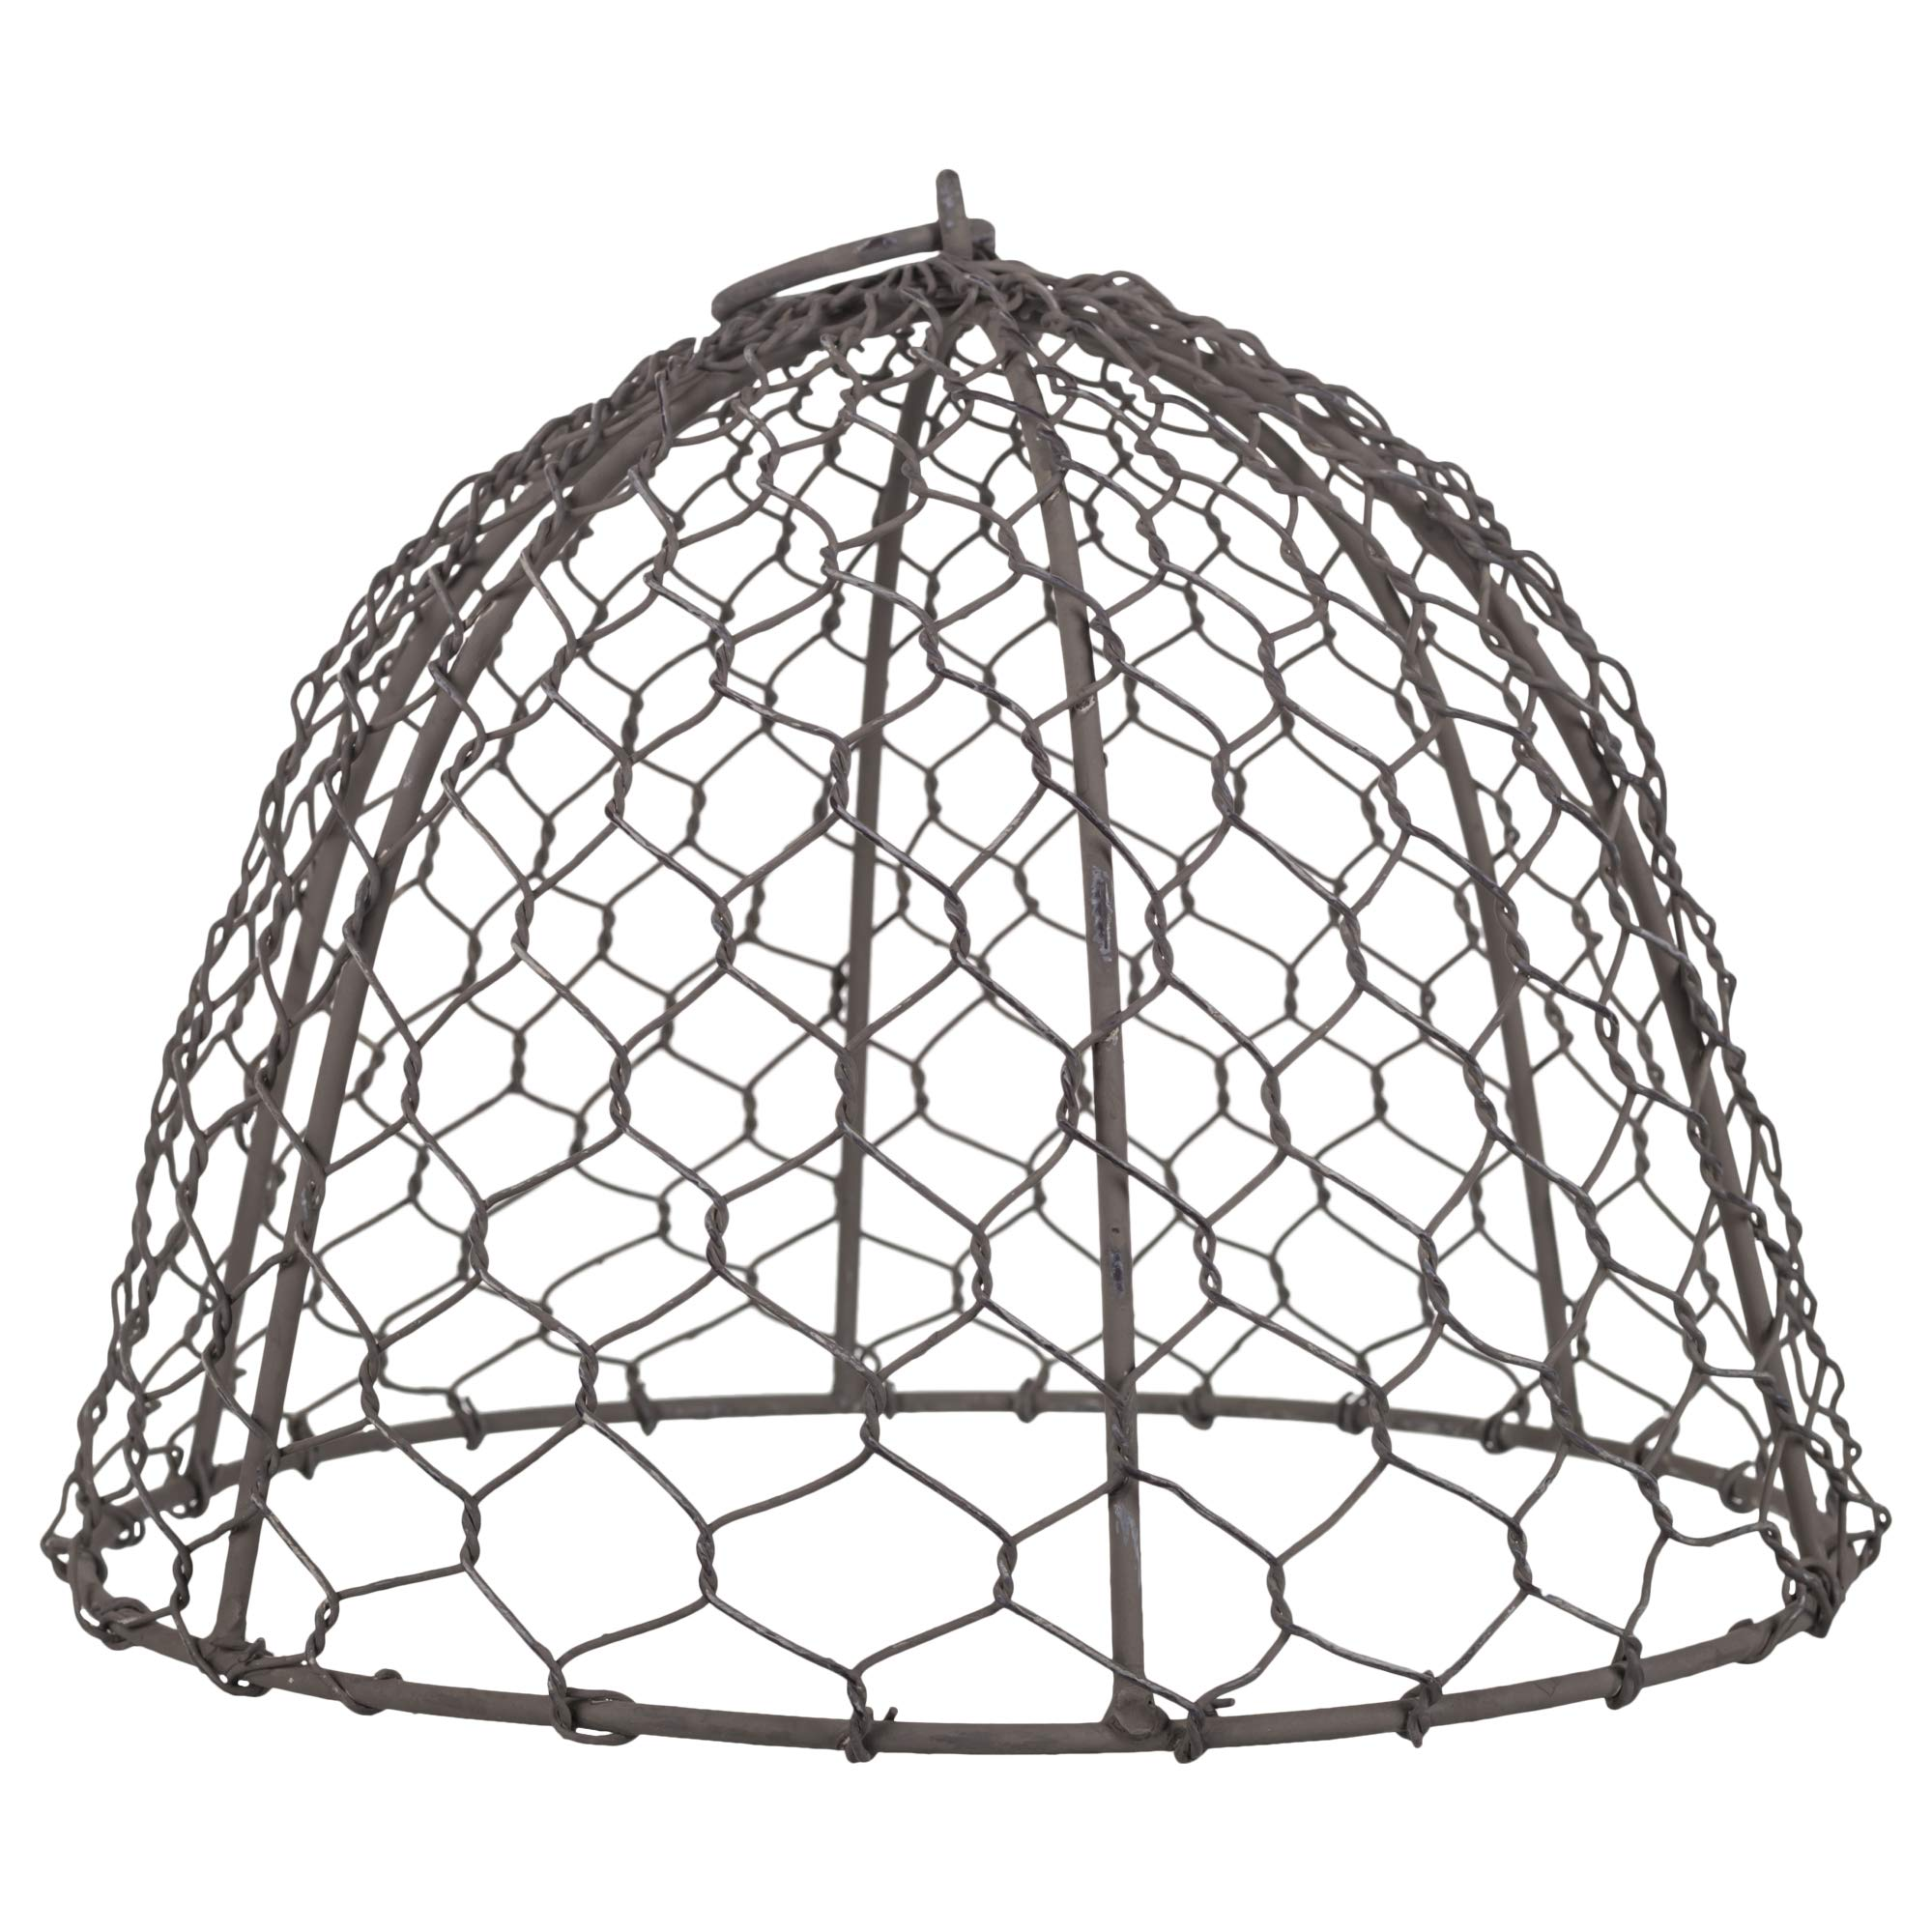 The Country House Domed Cloche Silver Tone 11 x 7 Chicken Wire Mesh Tin Metal Plant Cover